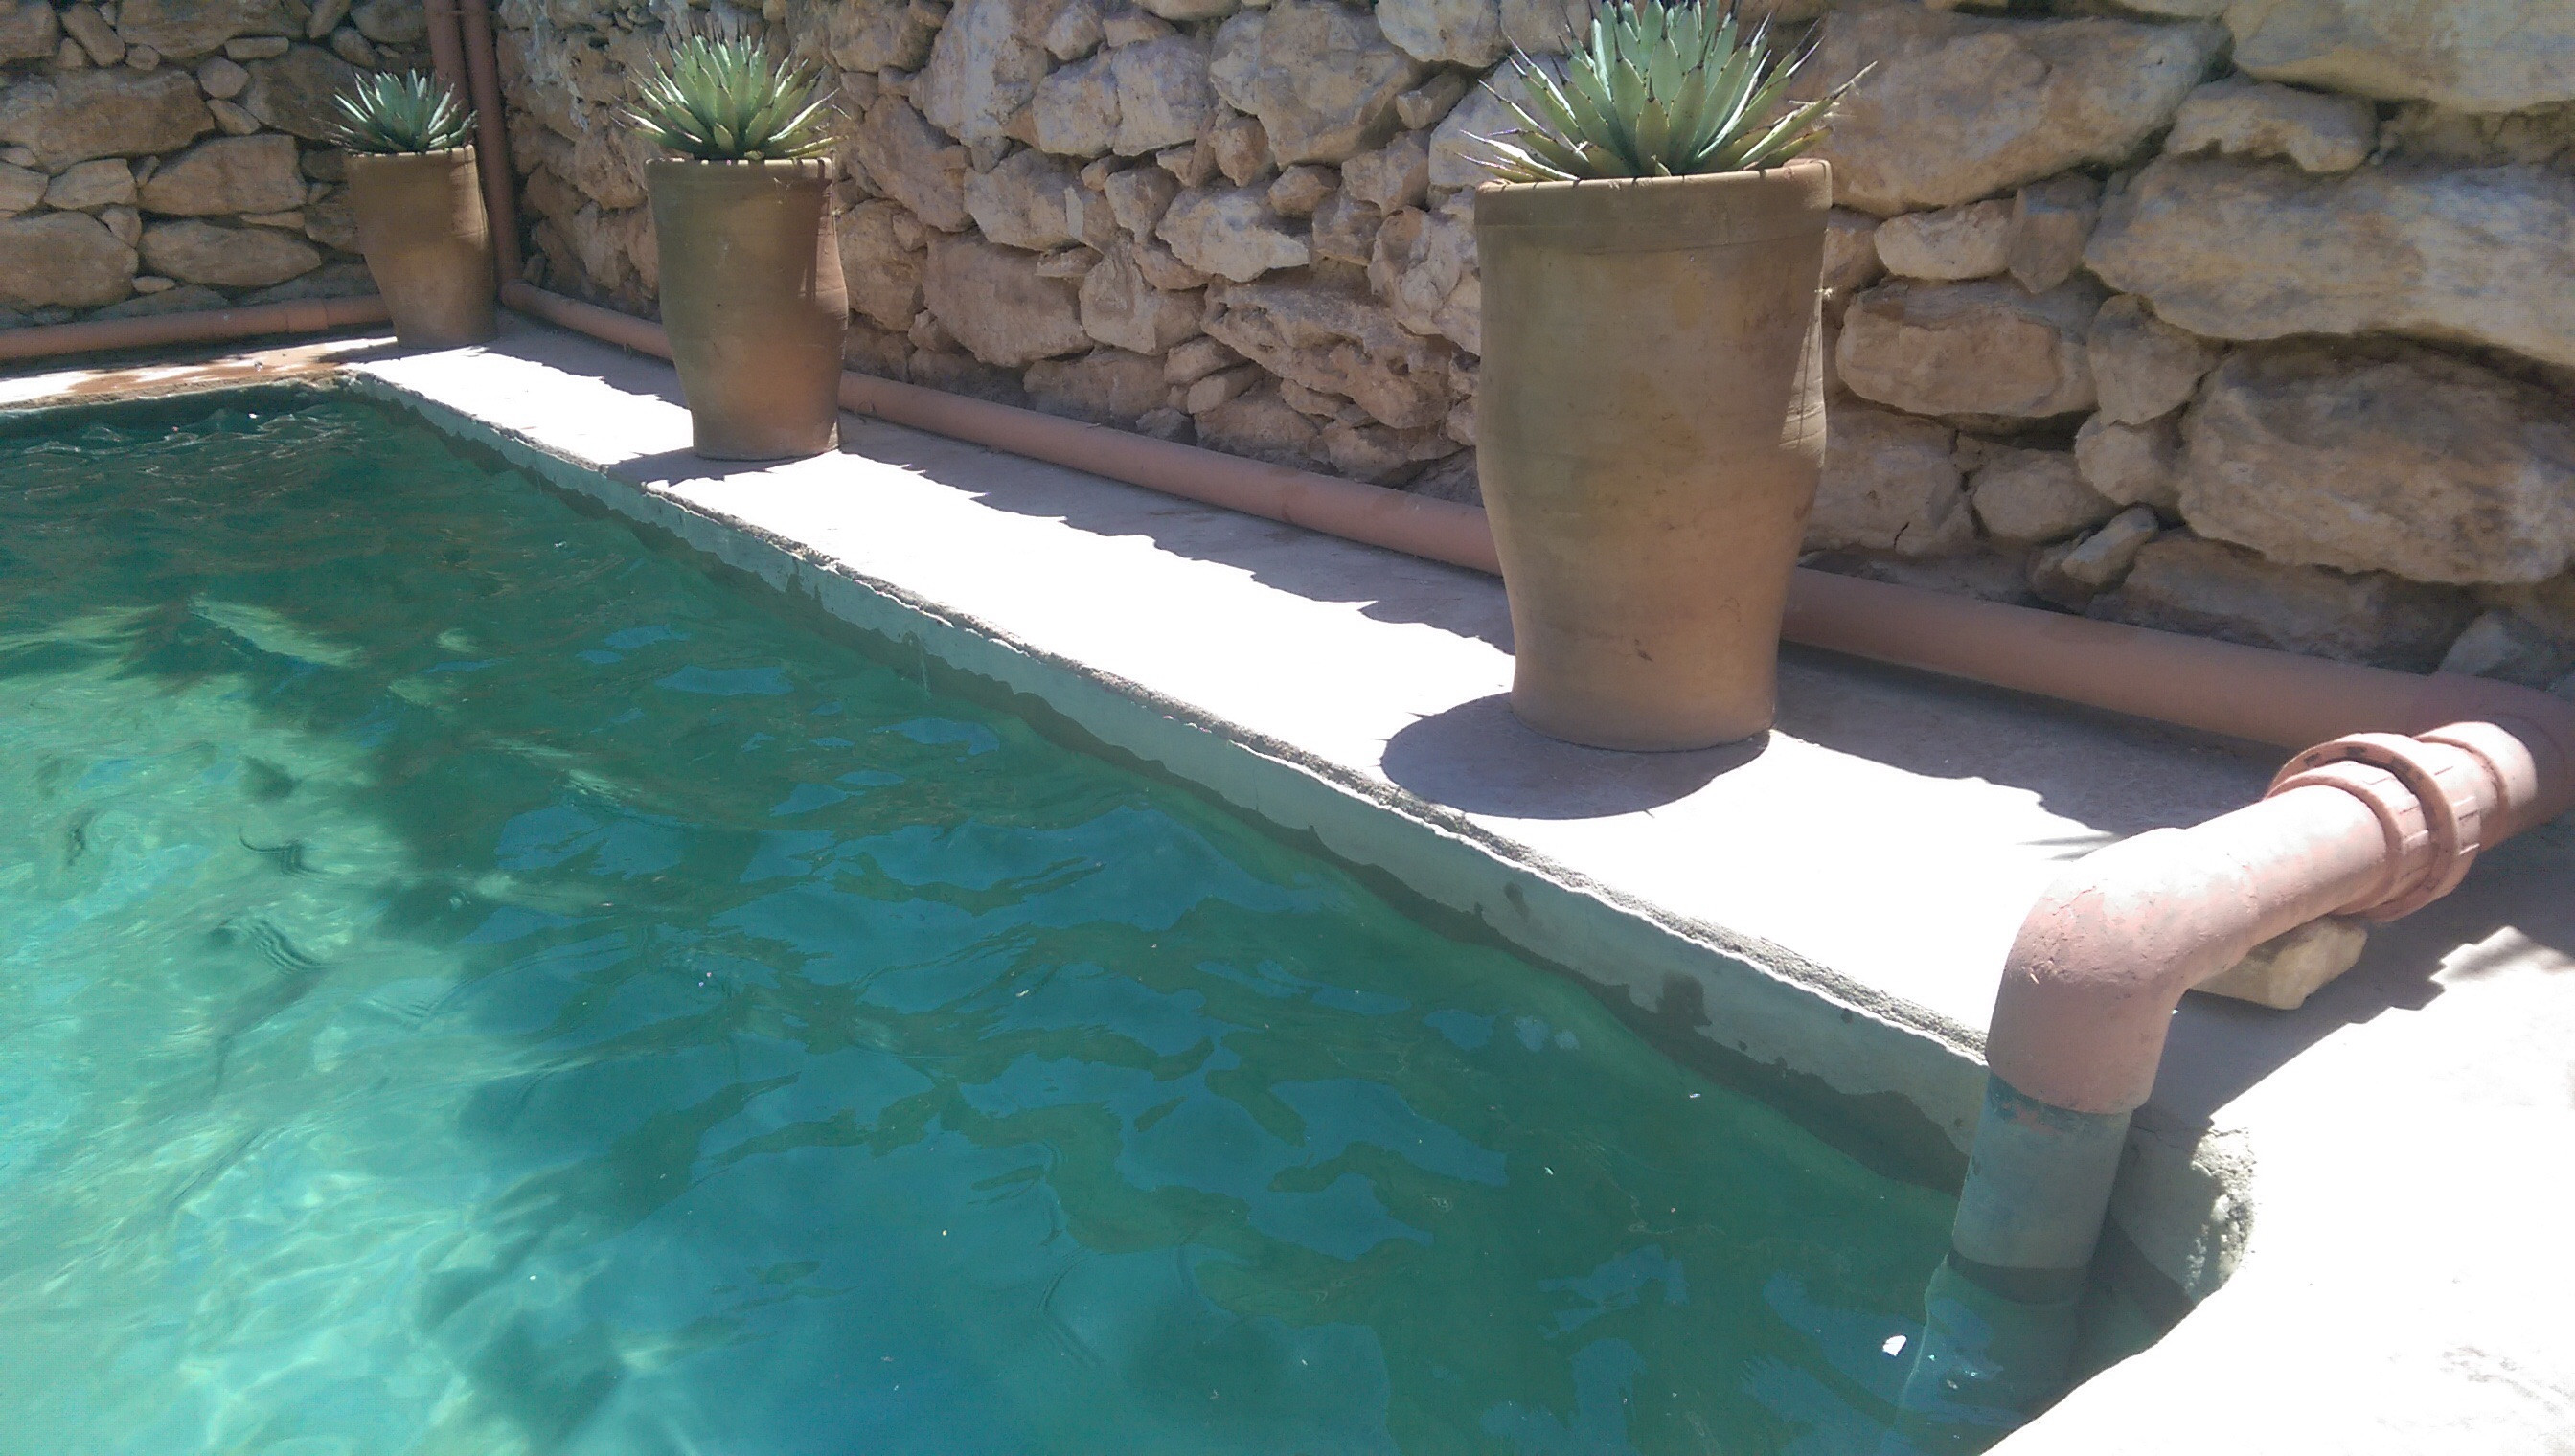 Diy Pool  Top 10 tips for building an affordable DIY natural pool